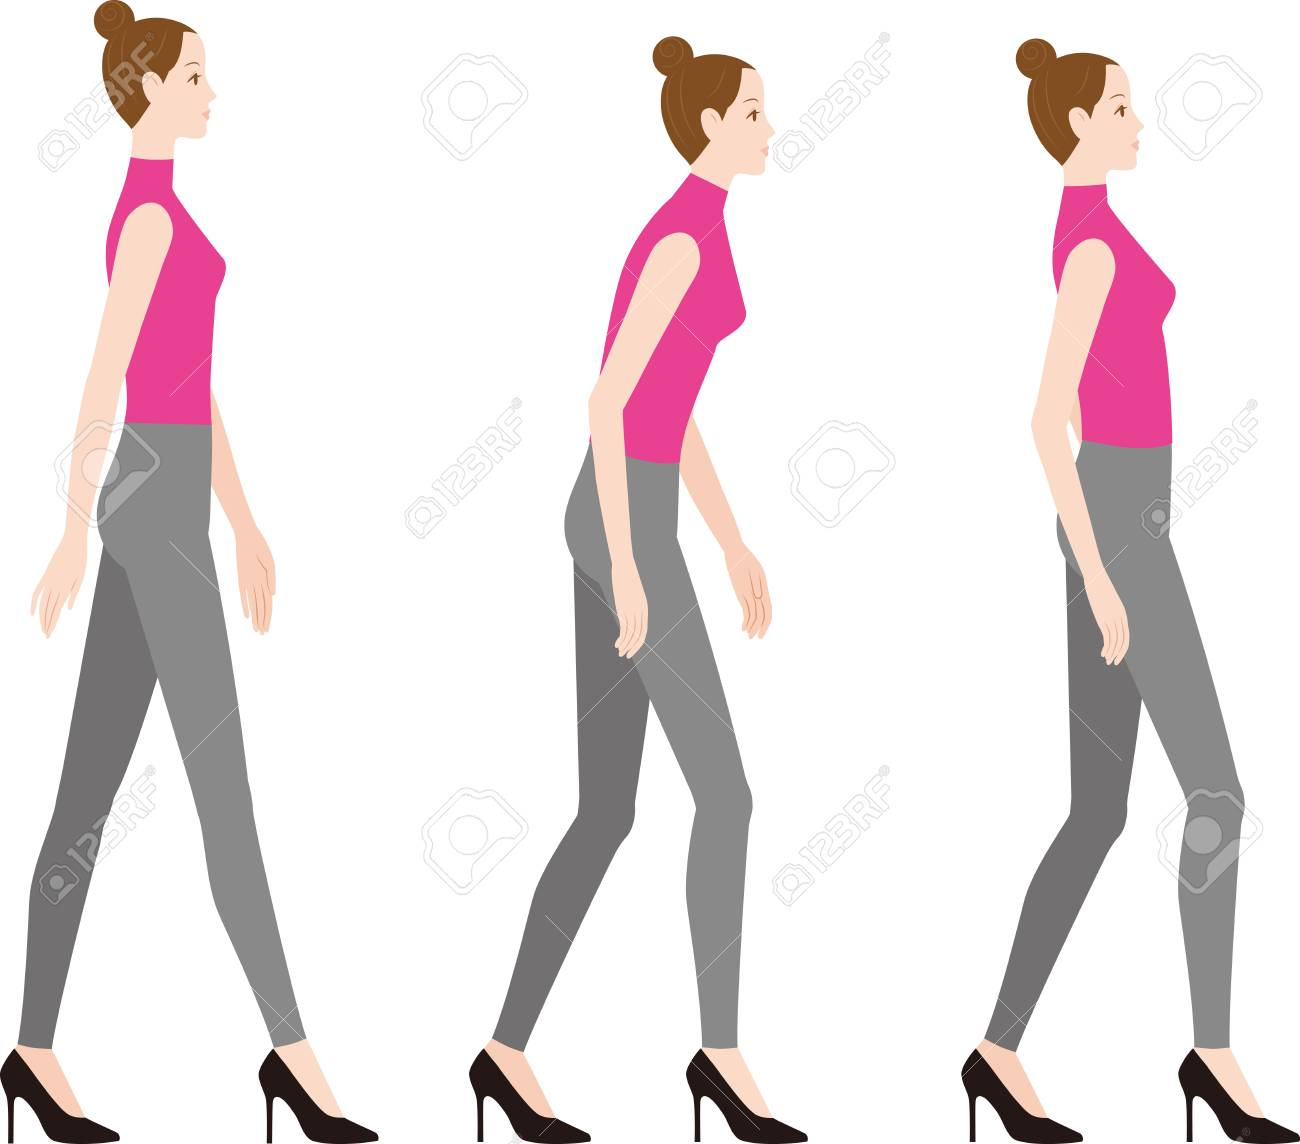 Bad And Wearing HeelsGood Posture Woman Posture A High wOilPXukZT